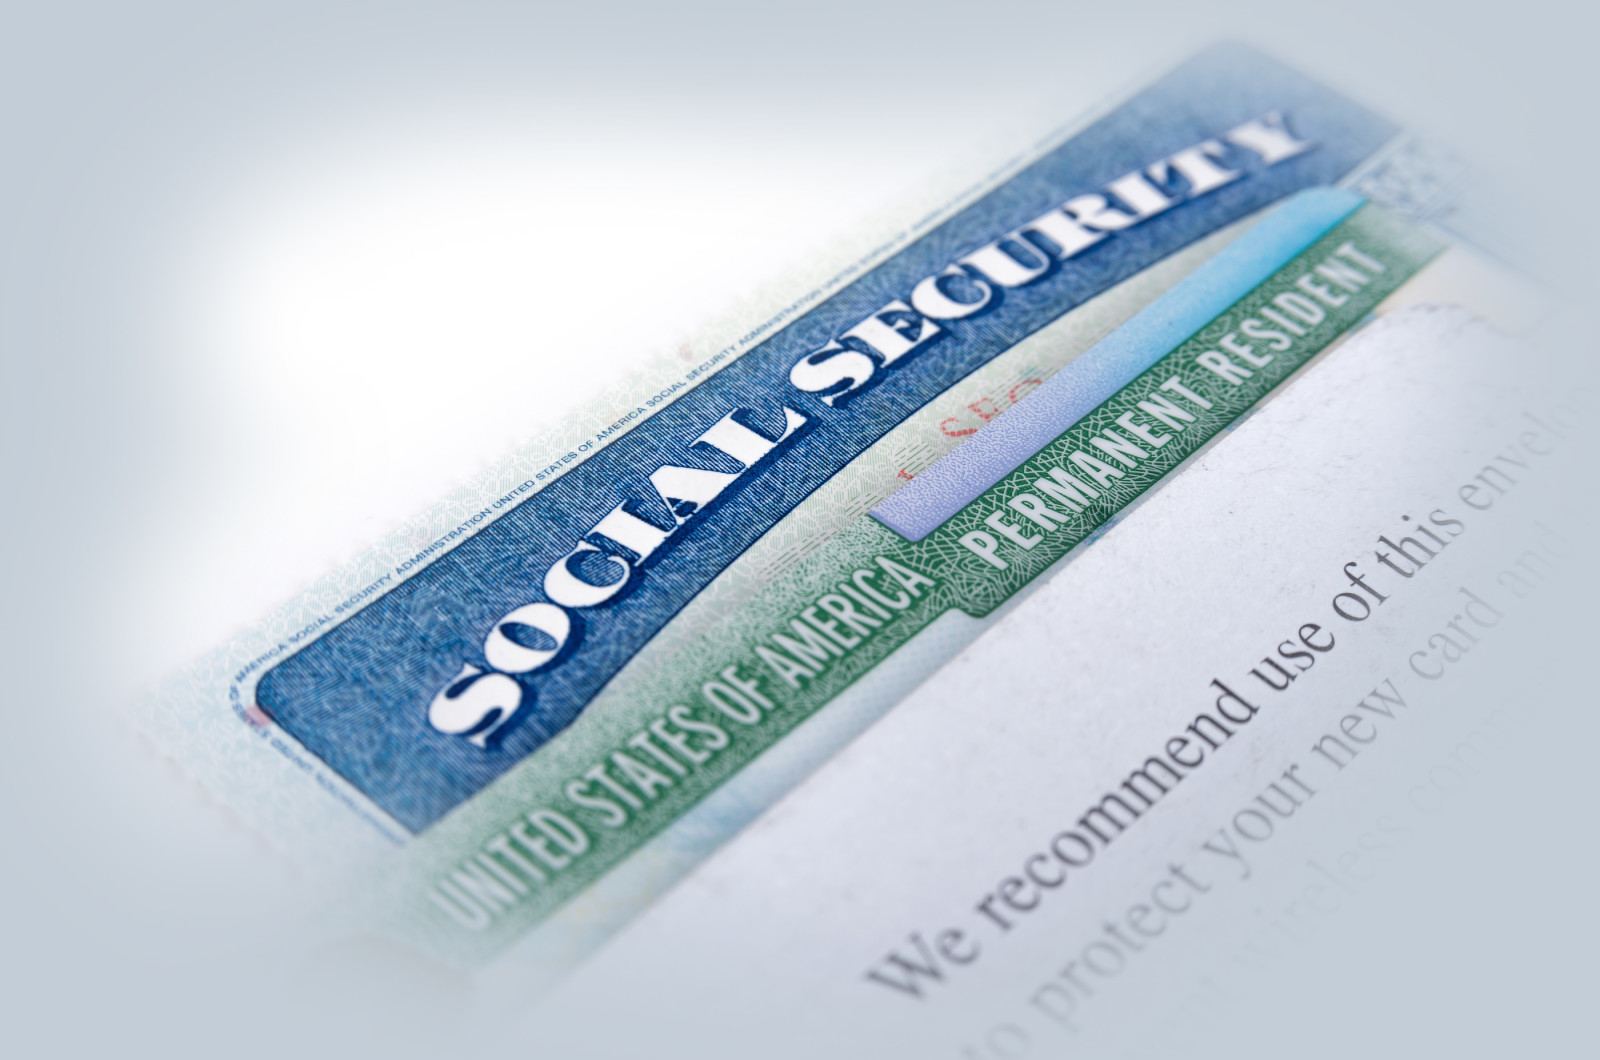 United States of America social security and green card on white